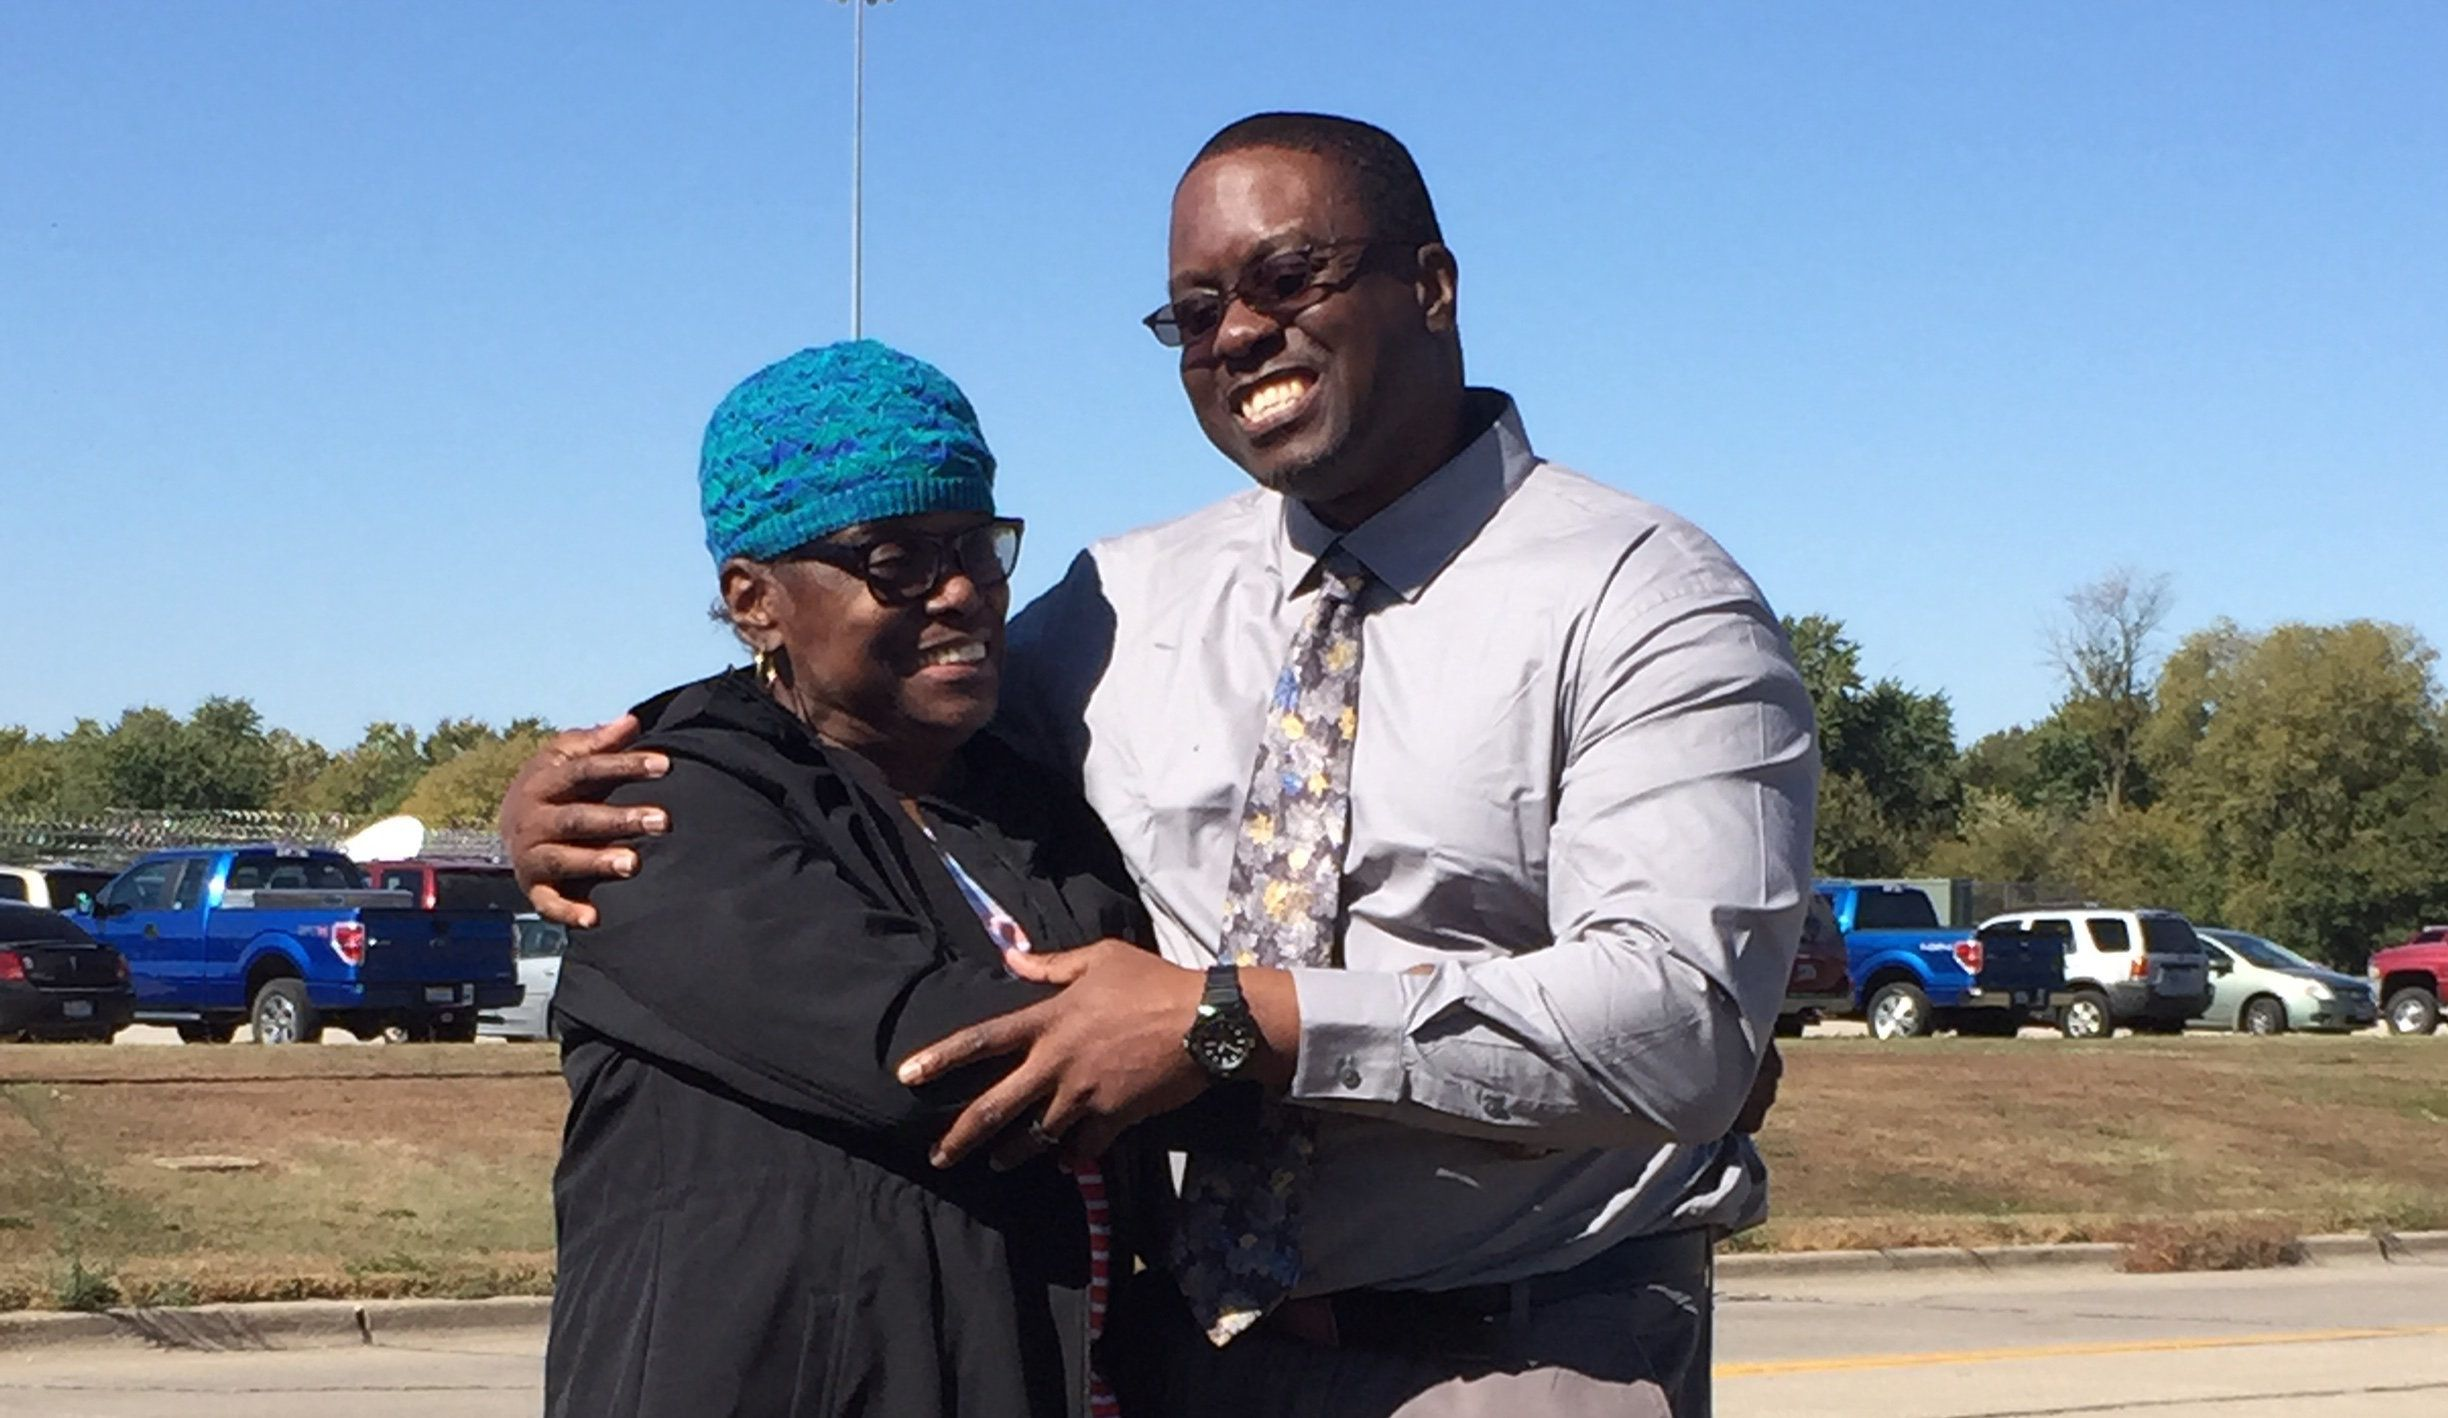 Shawn Whirl, right, hugs his mother after walking out of Hill Correctional Center in Galesburg, Illinois shortly after noon on Wednesday. Whirl had spent nearly 25 years wrongfully imprisoned as the result of a false confession coerced by police torture.